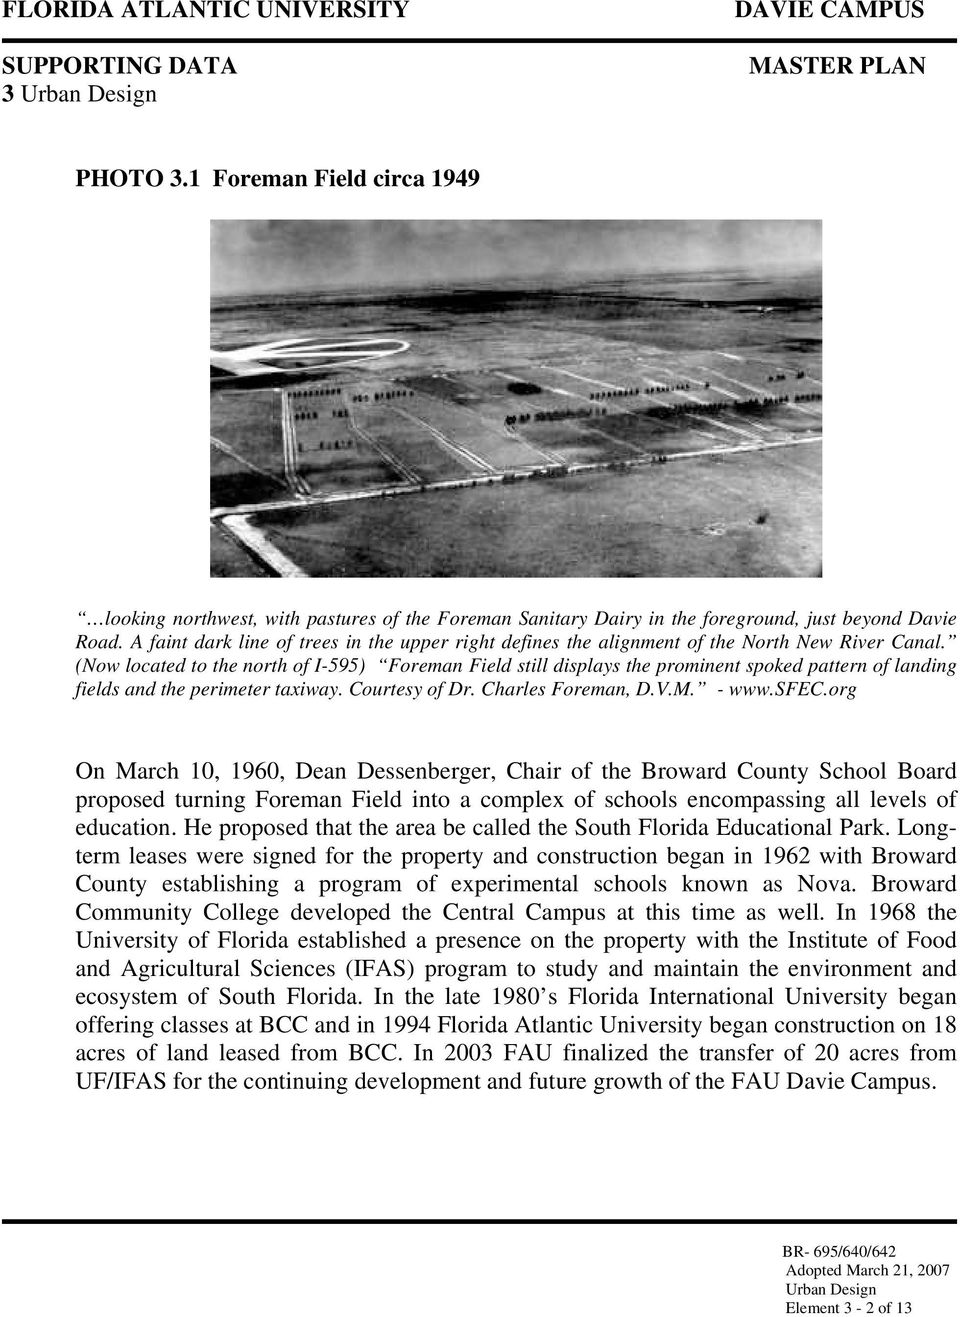 (Now located to the north of I-595) Foreman Field still displays the prominent spoked pattern of landing fields and the perimeter taxiway. Courtesy of Dr. Charles Foreman, D.V.M. - www.sfec.